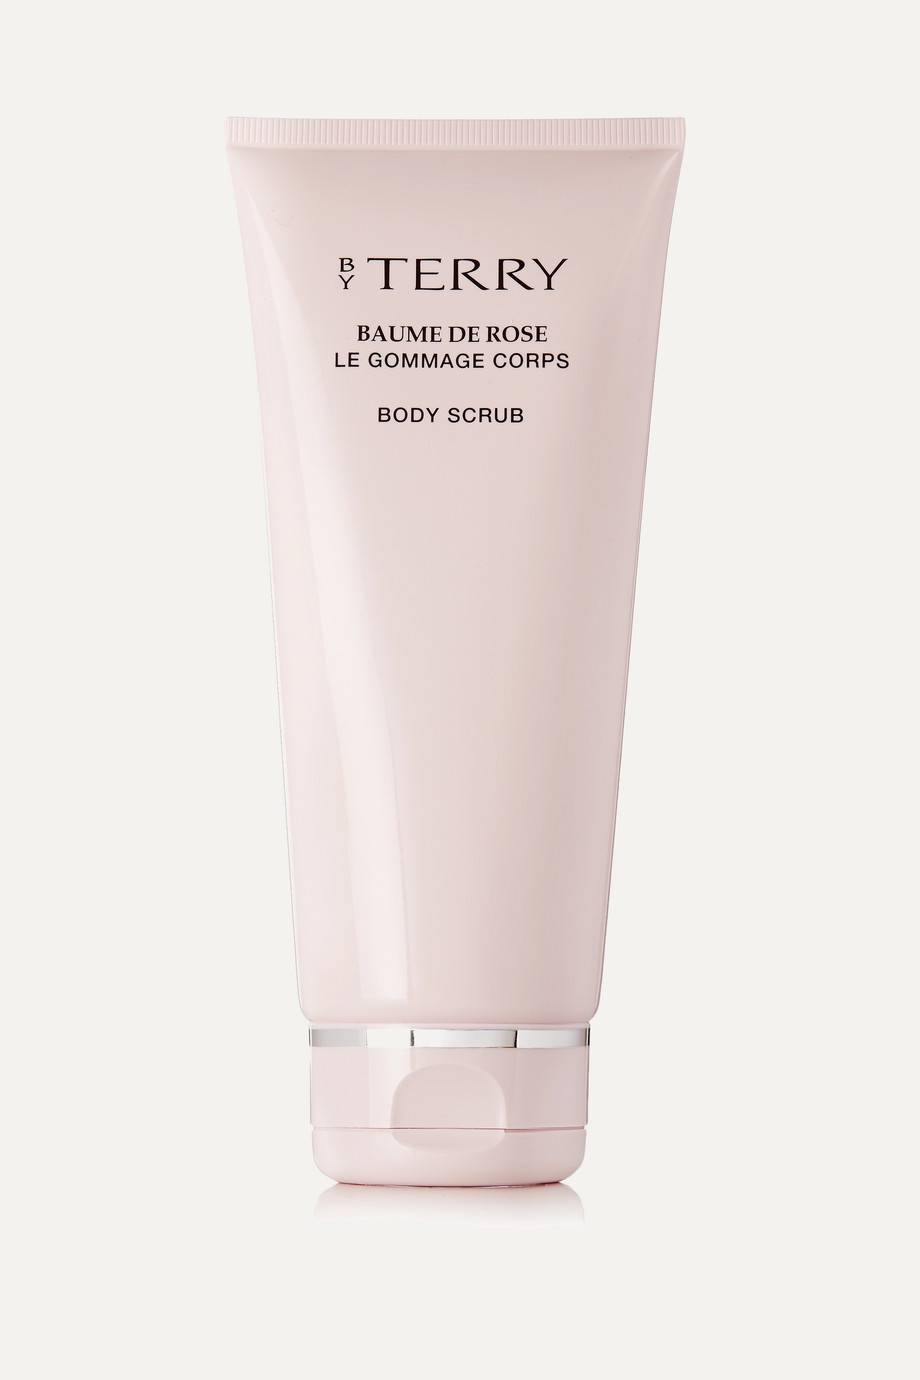 BY TERRY Baume de Rose Body Scrub, 180g